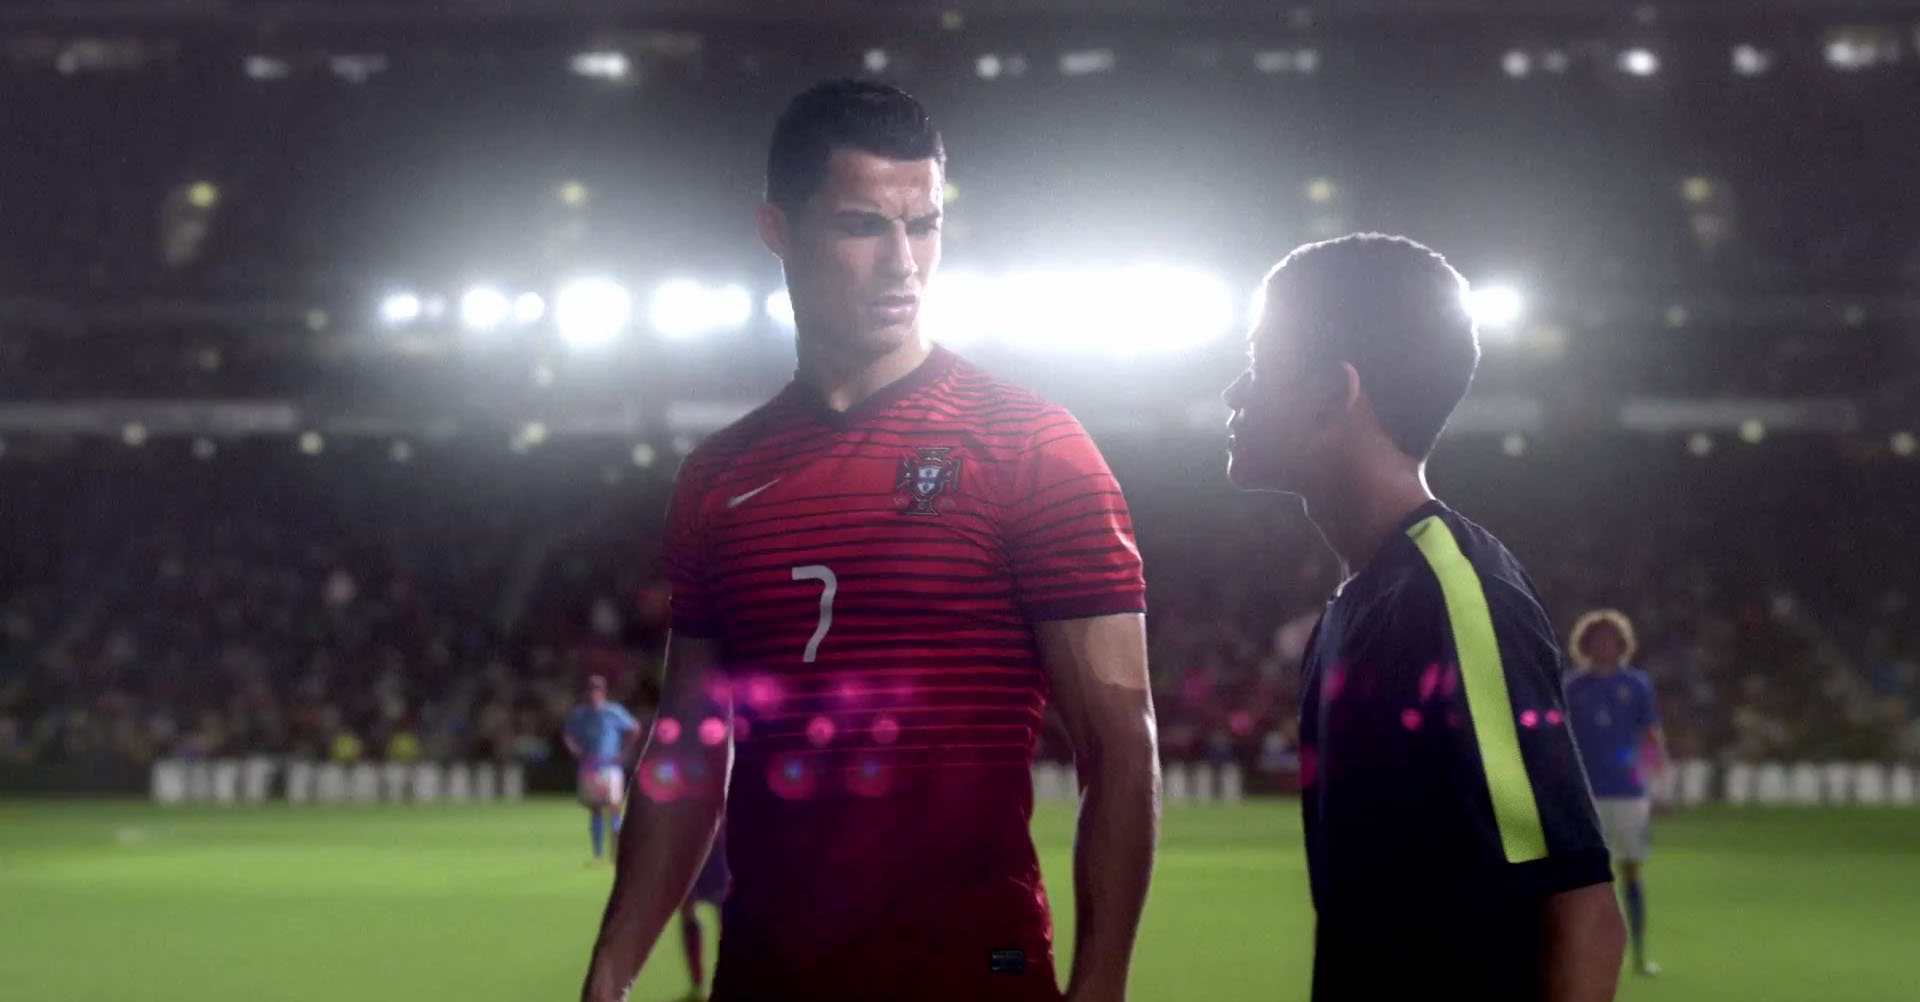 Cristiano Ronaldo stepping out for a fan to take the penalty-kick in the ad for Nike